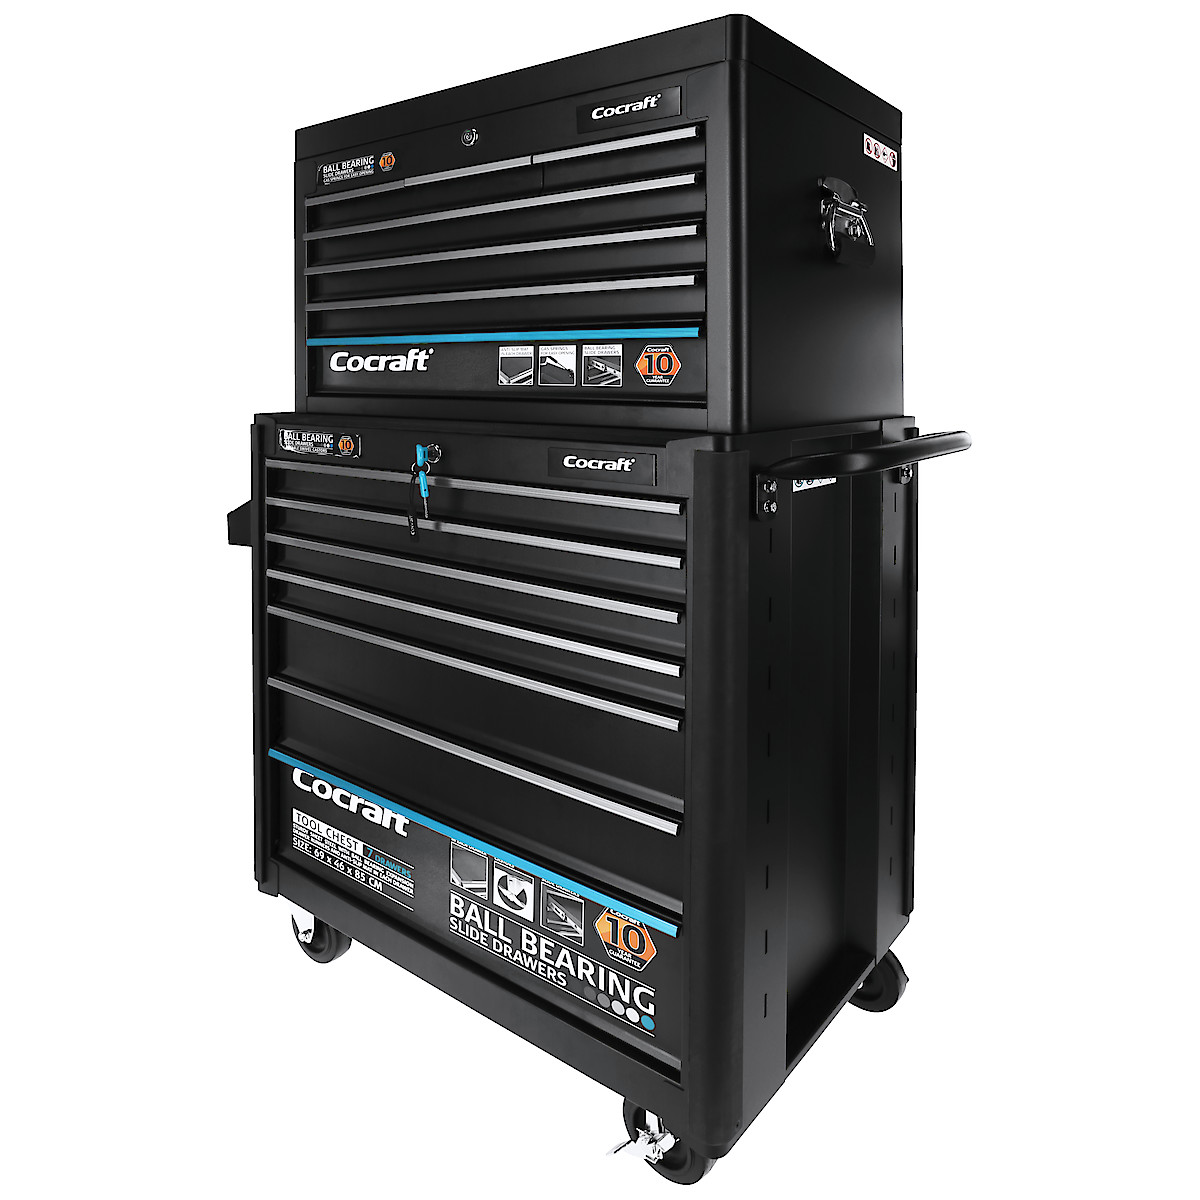 Cocraft Tool Chest with Top Tray